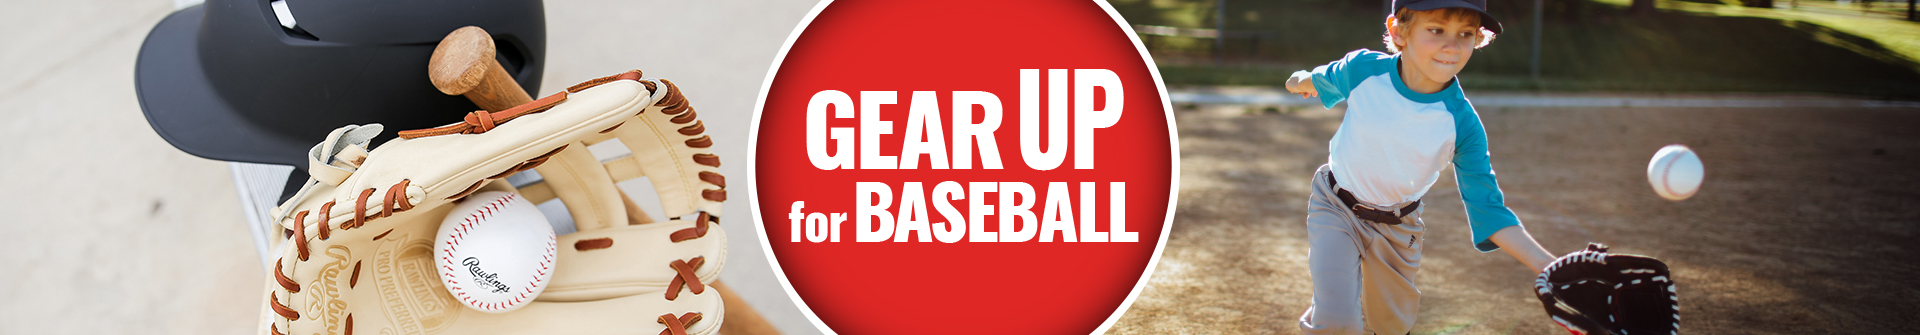 Gear Up For Spring  With Rawlings Shop Their New Selection Of Encore & R9 Gloves, Heart Of The Hide Gloves, Pro Select Gloves, Big Stick Bats, Velo Bats, Mach & Coolflo Helmets & Much More Available For Sale At Your Local Source For Sports Baseball & Softball Stores Near You.